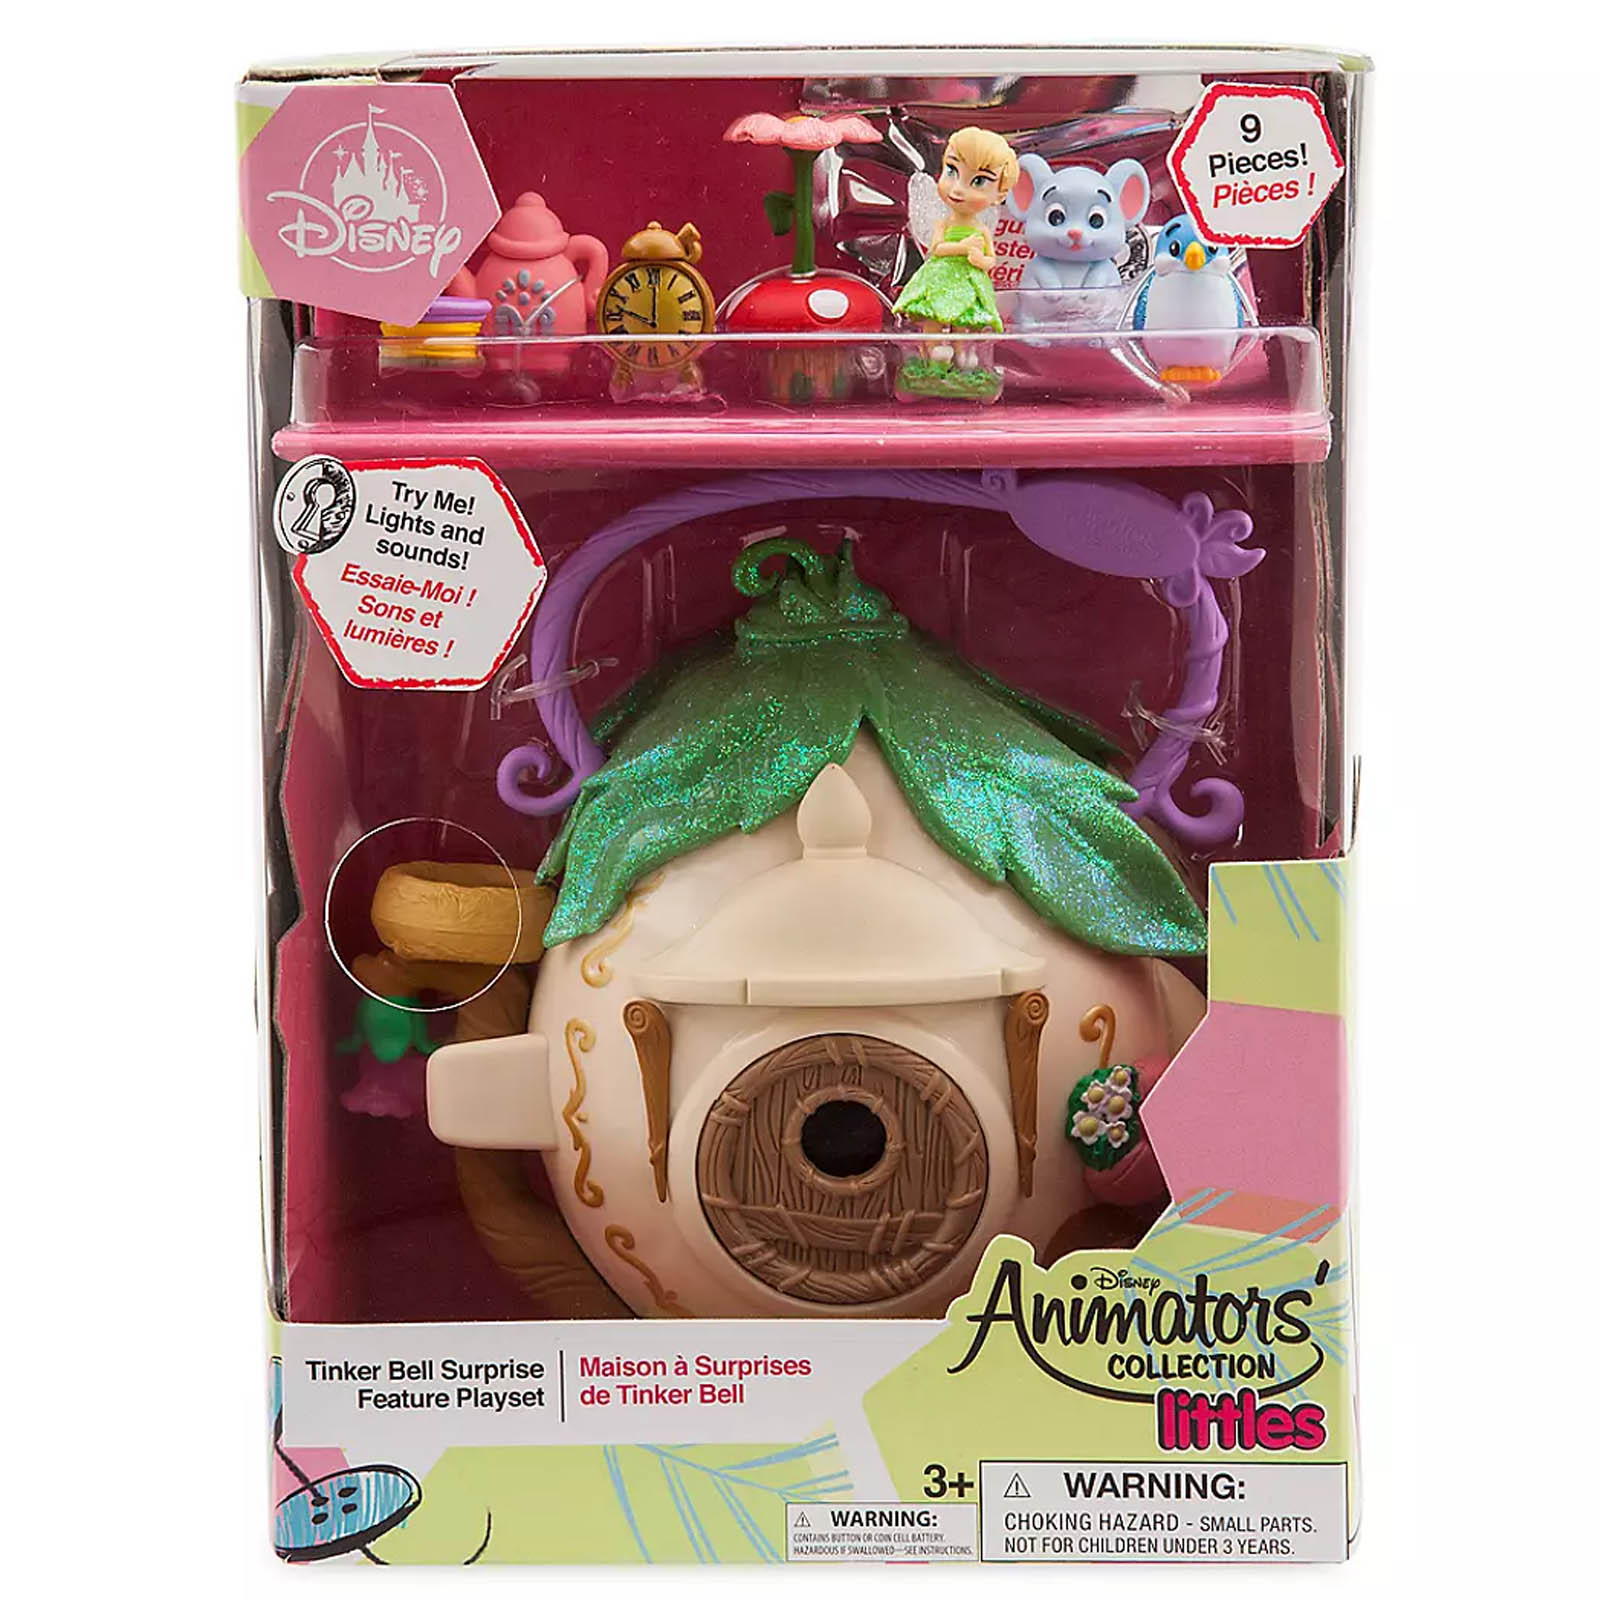 Disney Animators' Collection Littles Tinker Bell Surprise Set